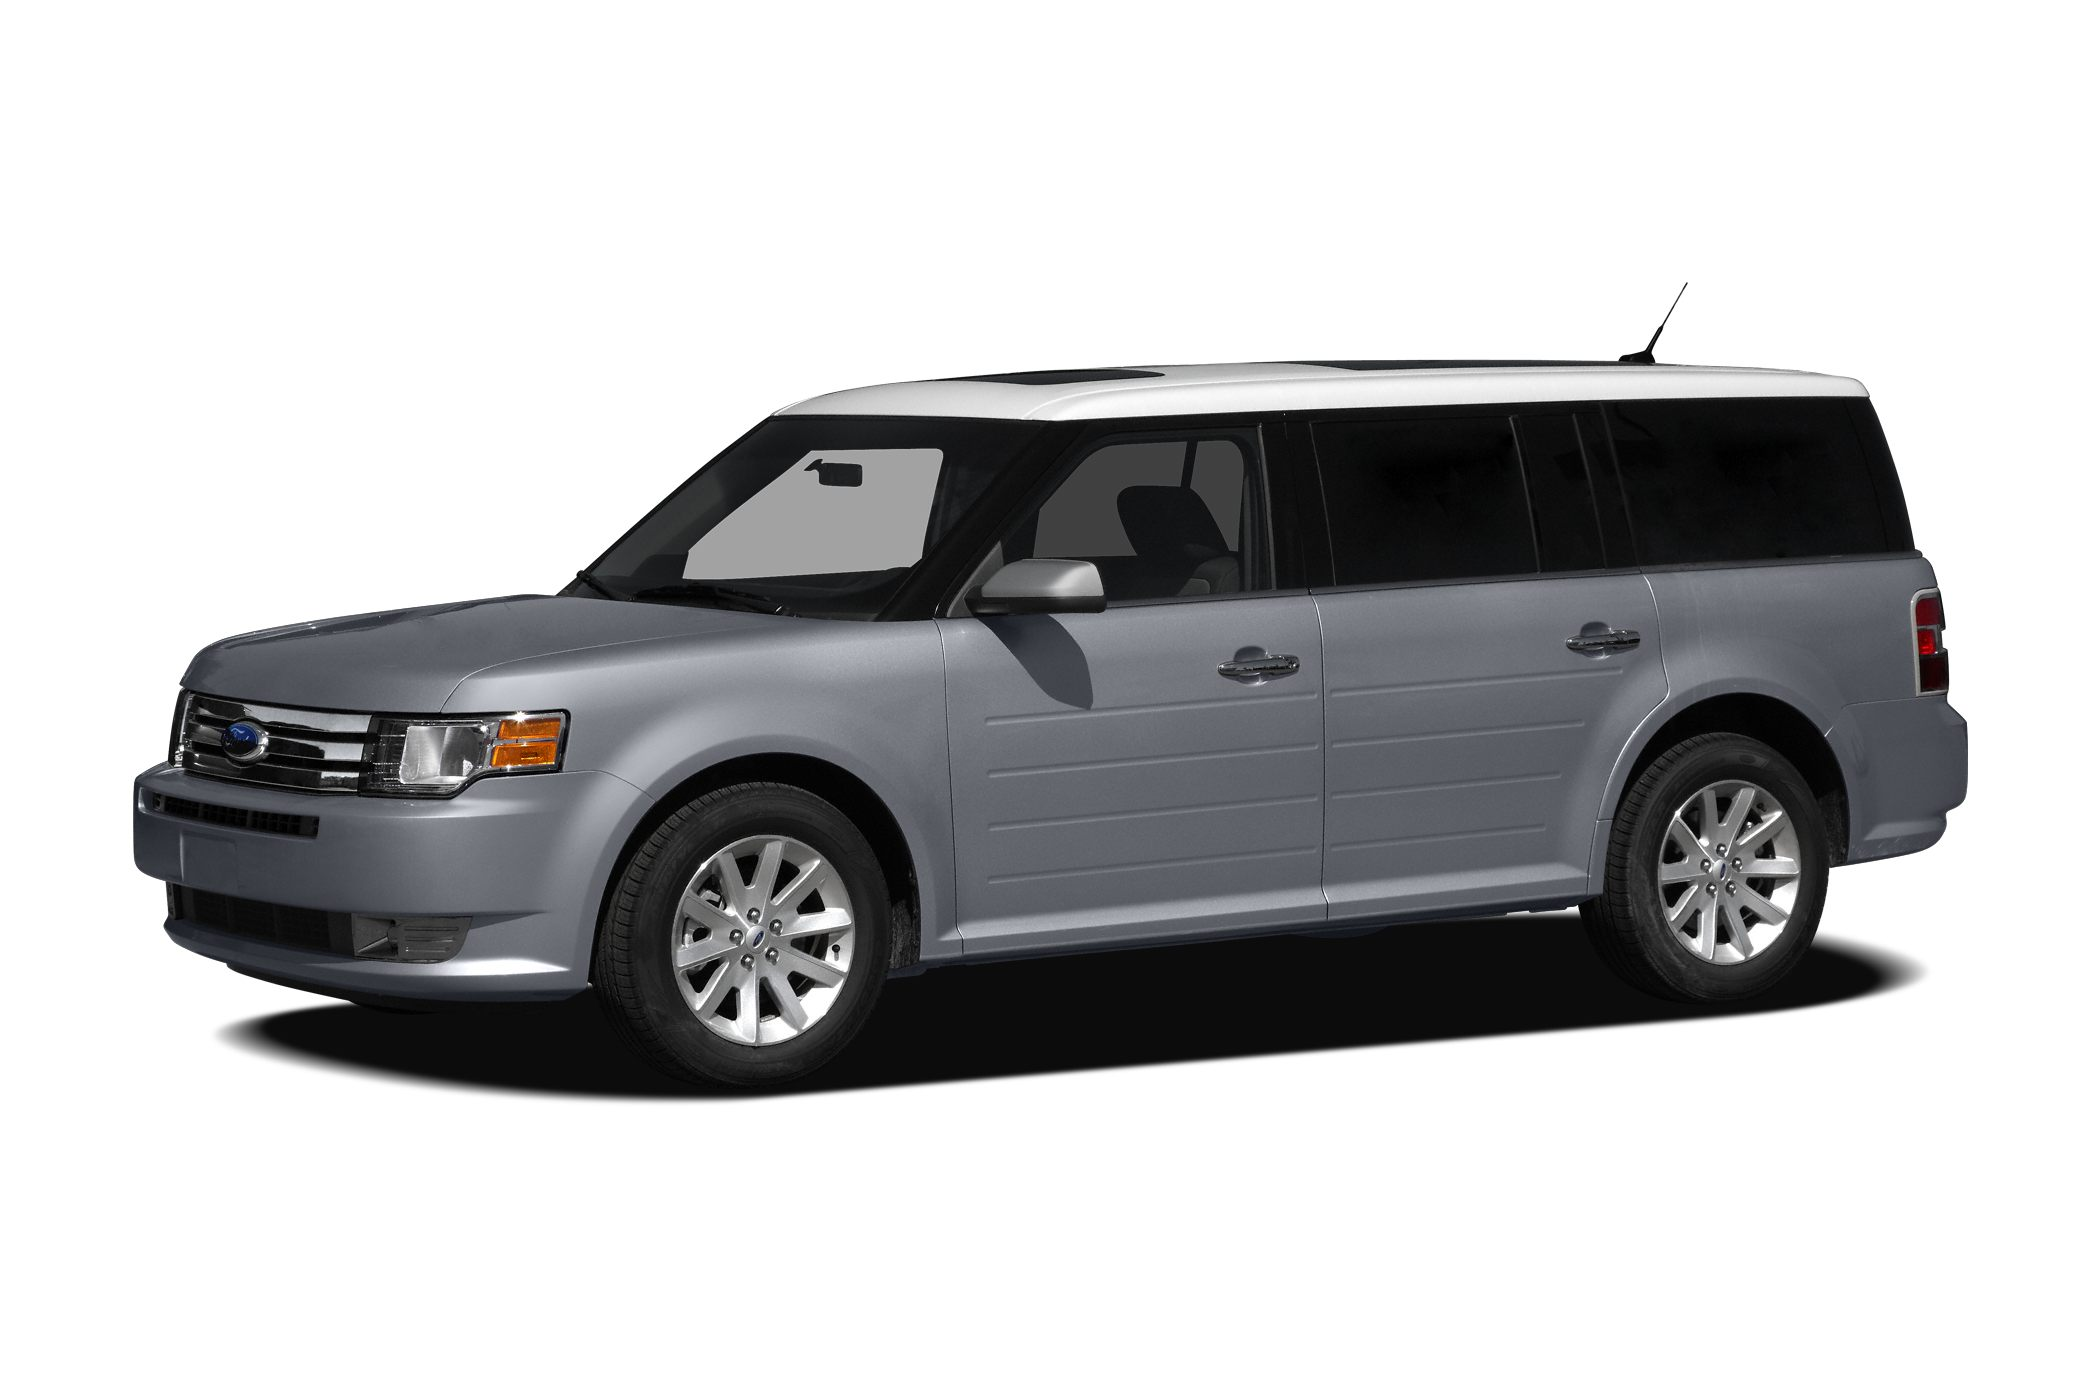 2011 Ford Flex SEL SUV for sale in Sevierville for $20,995 with 62,281 miles.